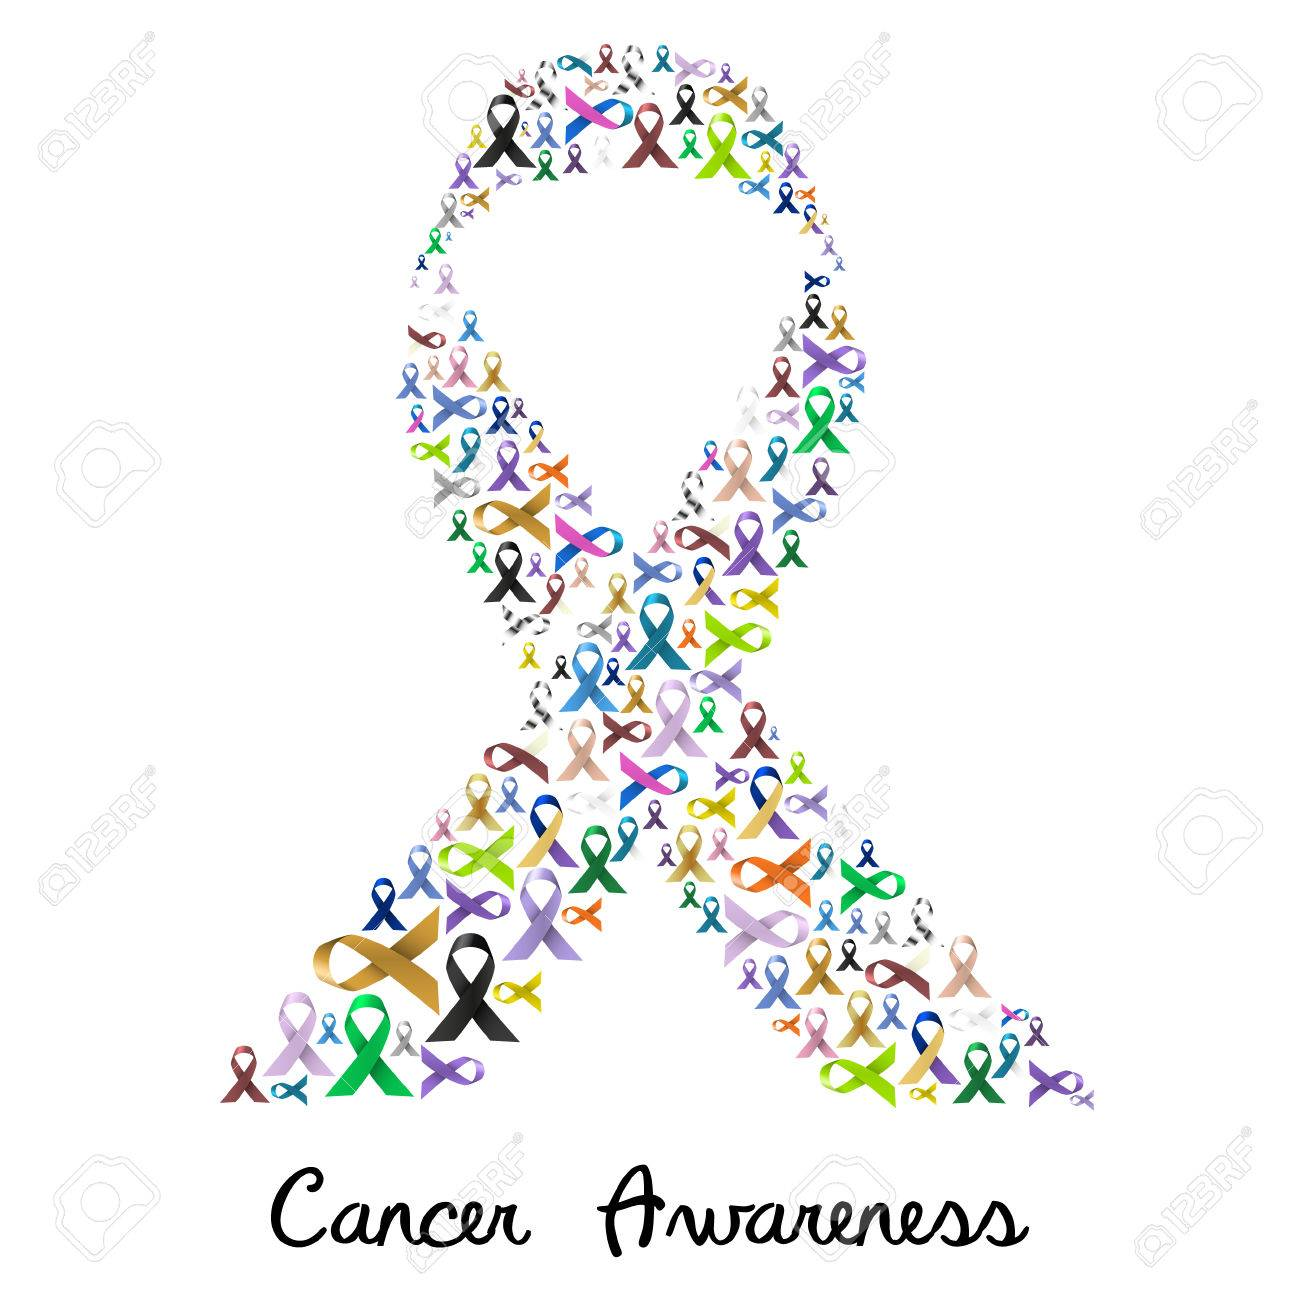 Cancer awareness various color and shiny ribbons for help like cancer awareness various color and shiny ribbons for help like a big colorful ribbon stock vector biocorpaavc Gallery